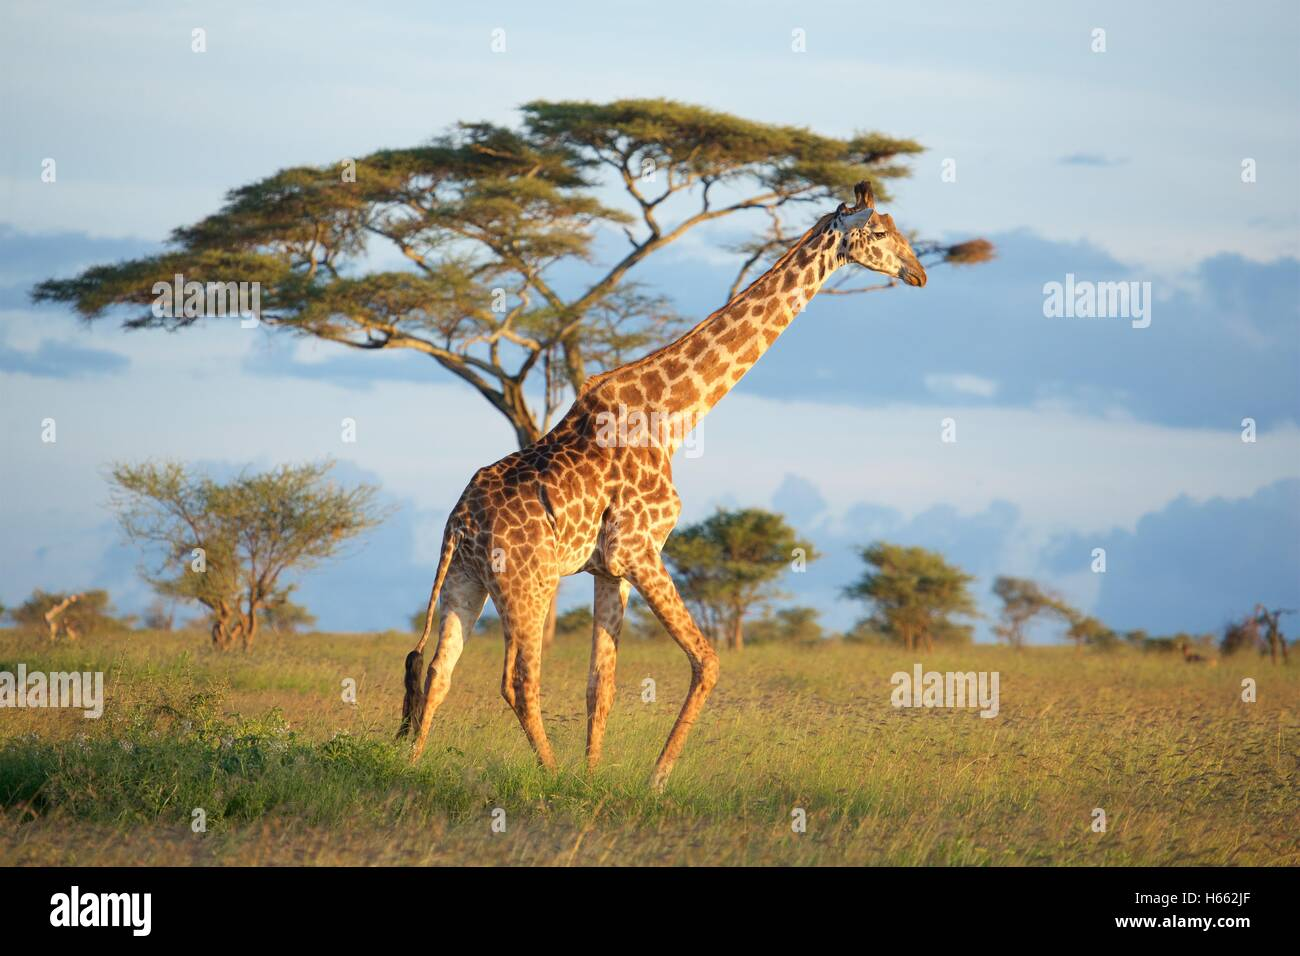 Affichage d'état sauvage girafe en safari dans le Parc National du Serengeti, Tanzanie. Photo Stock